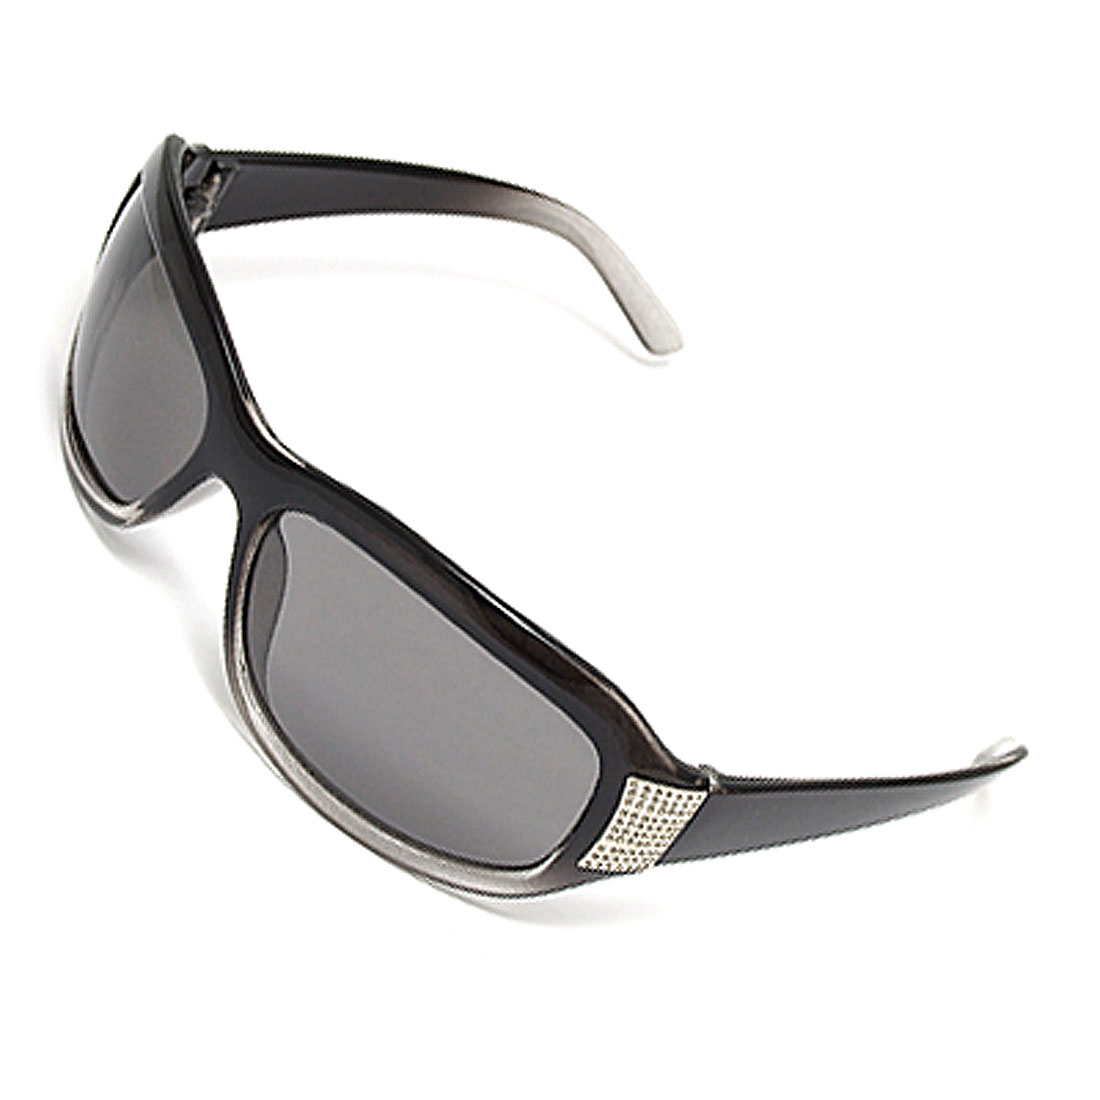 Silvery Clear Black Plastic Women's Surfing Sunglasses